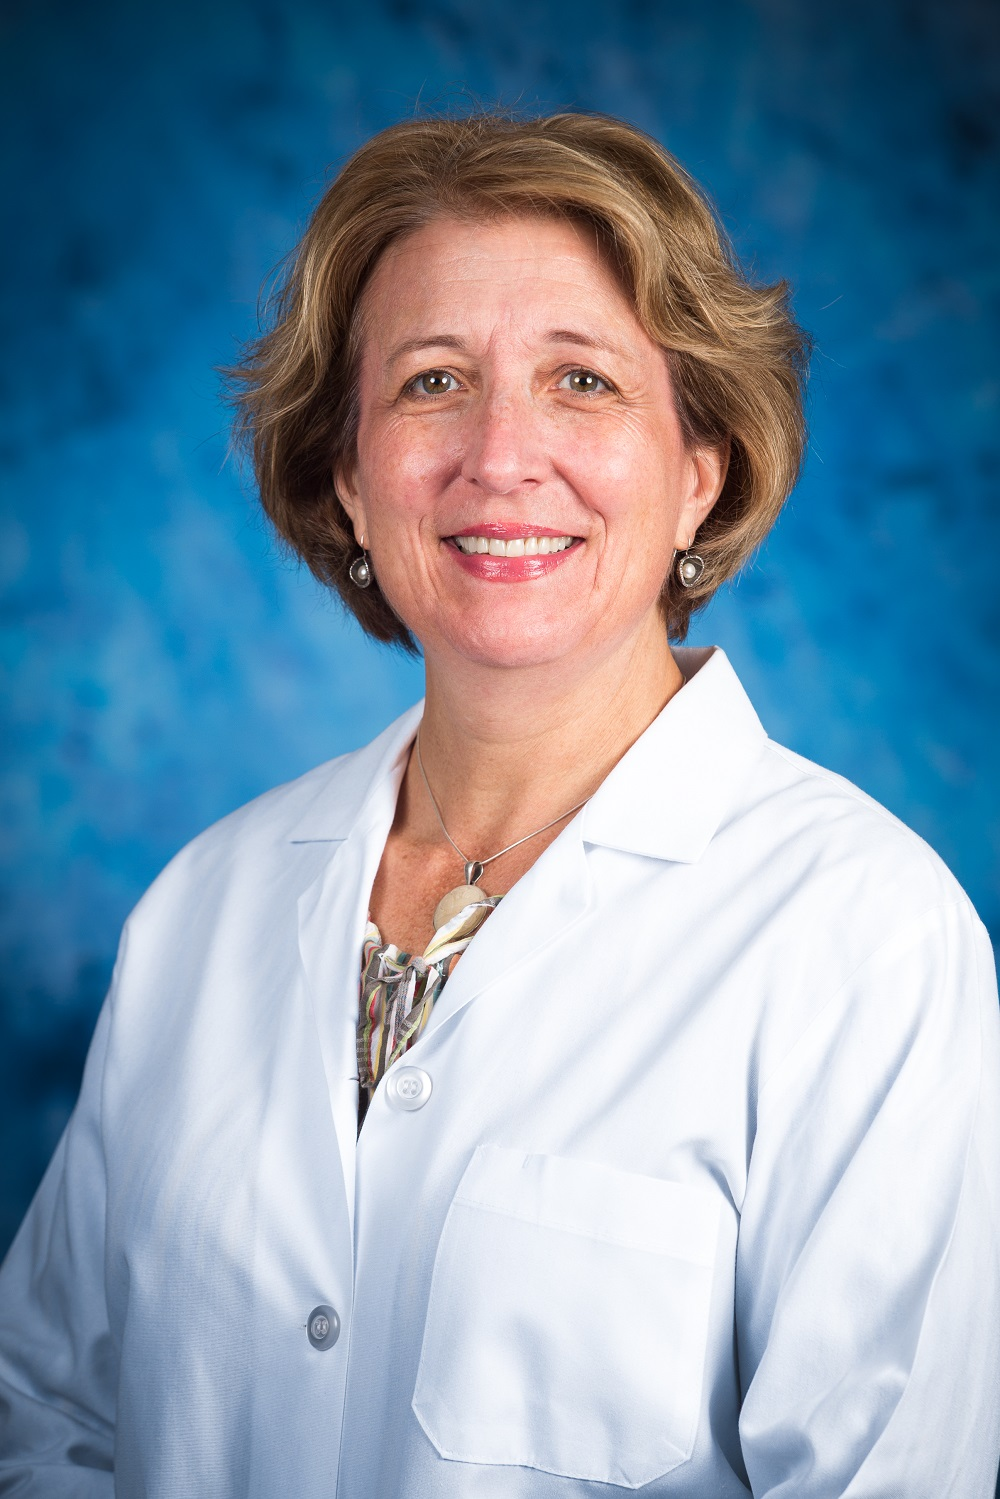 Ellen Liuzza, MD